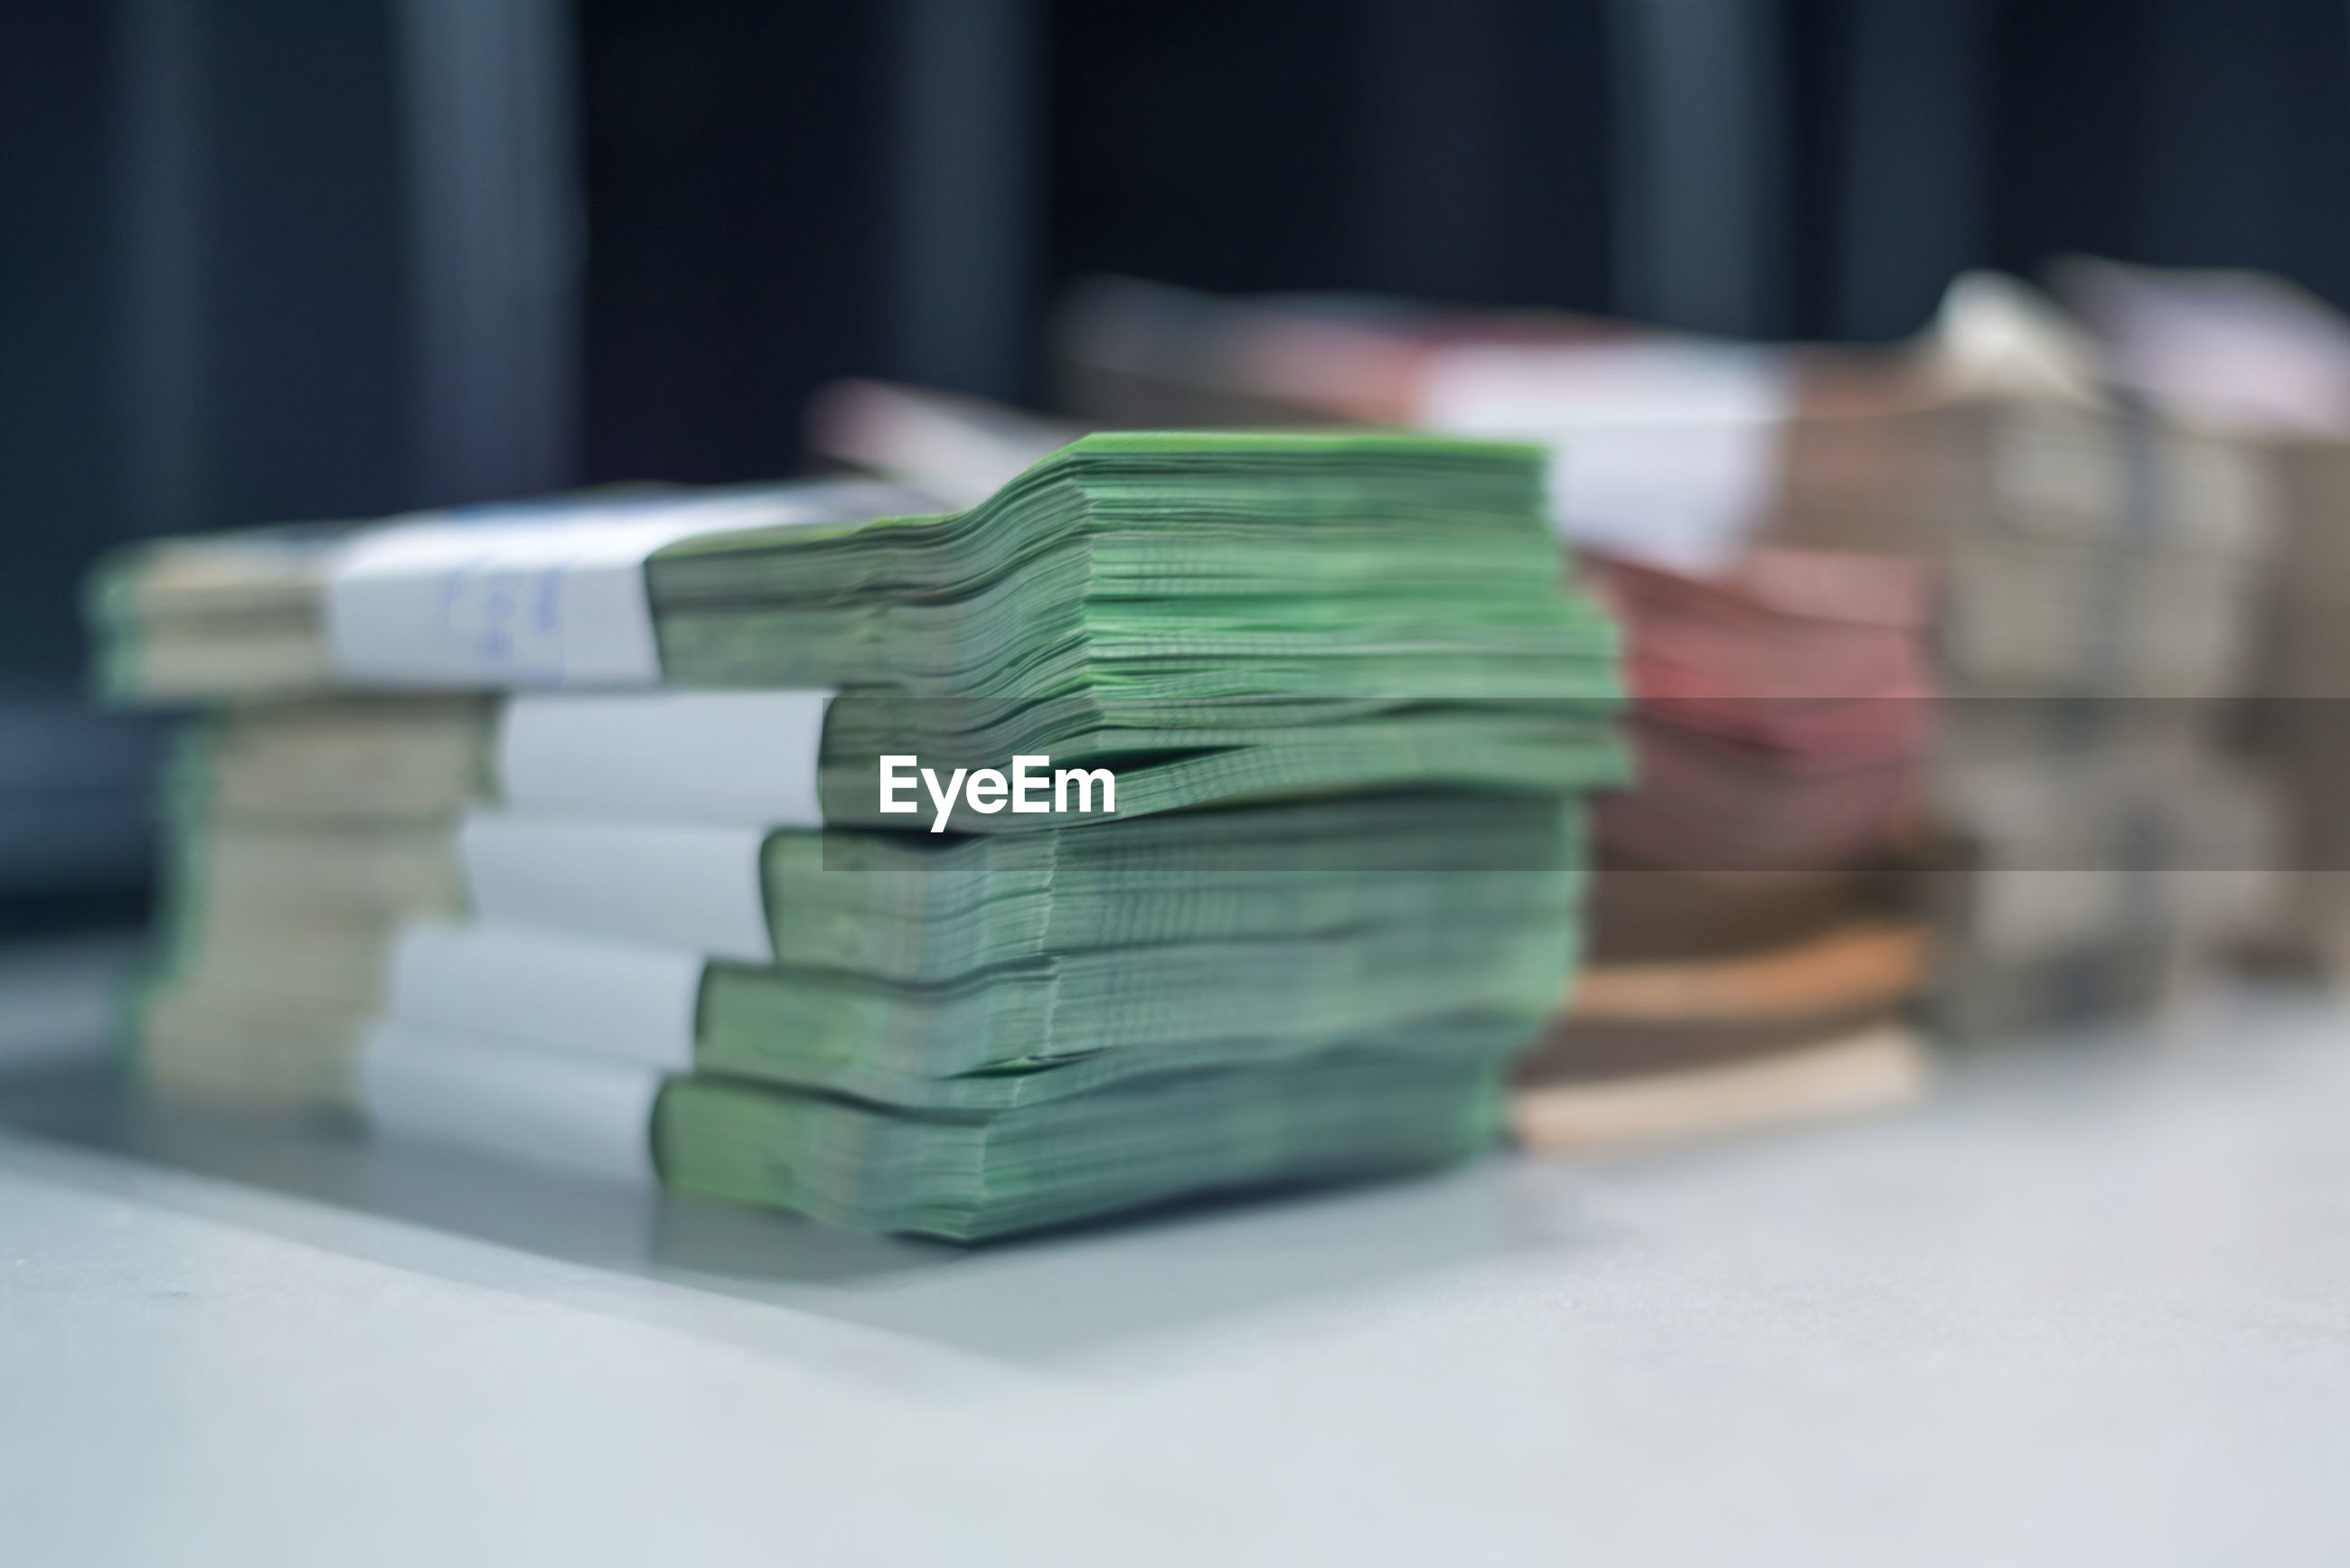 Close-up of banknotes bundle on table